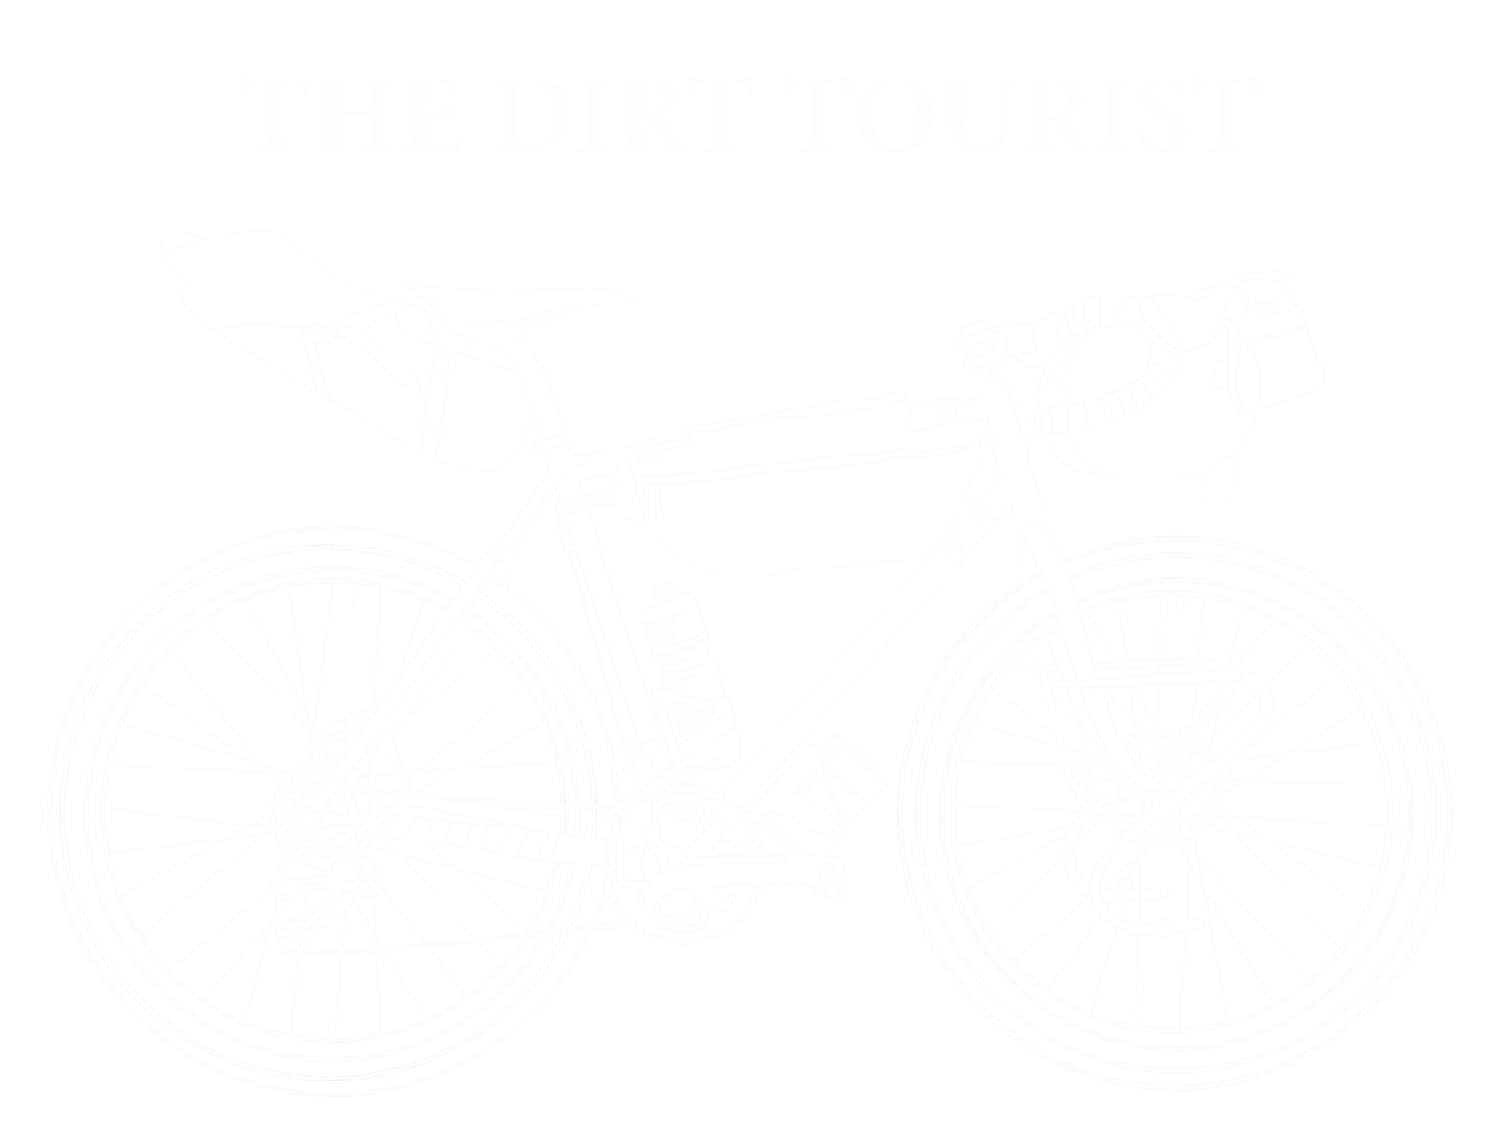 The Dirt Tourist